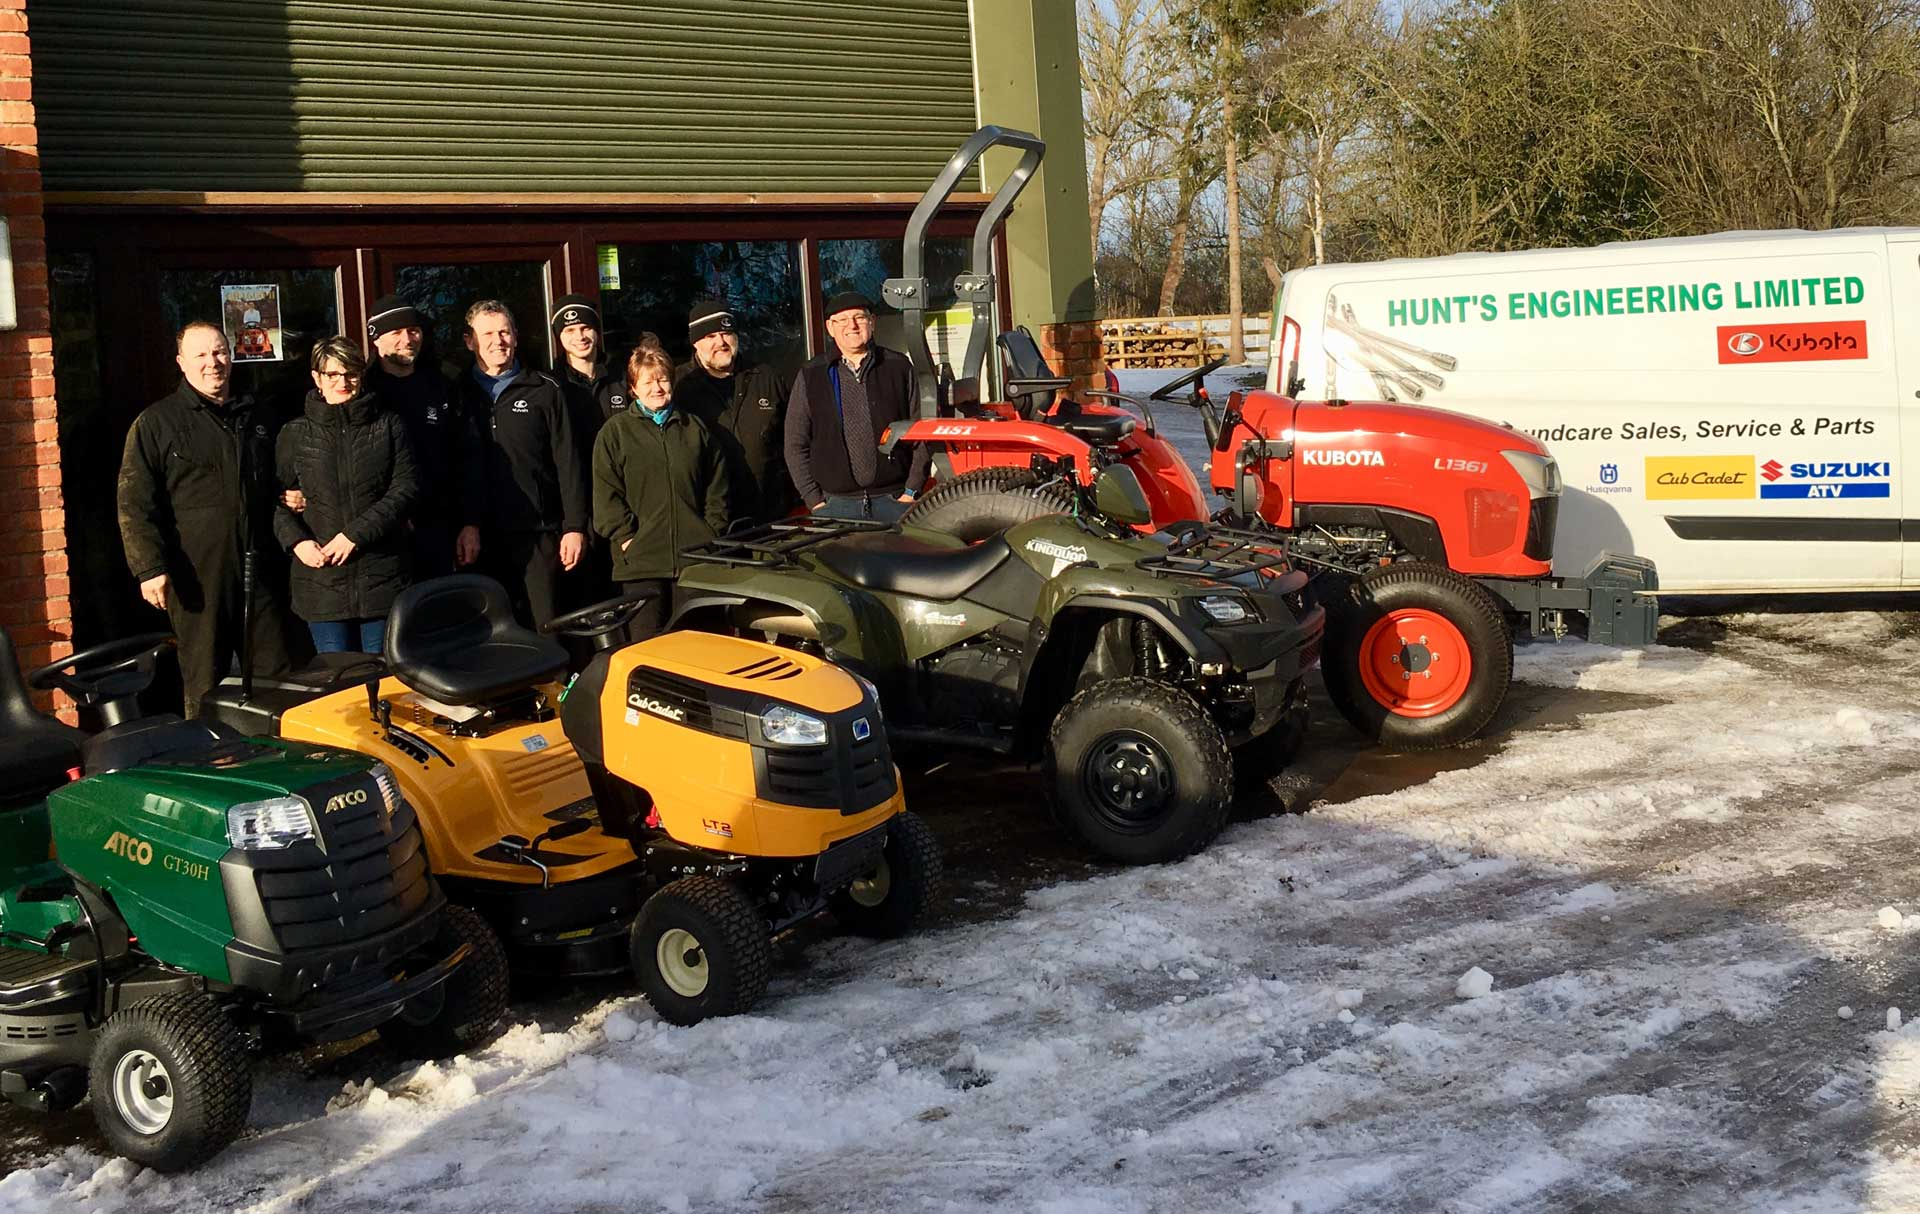 Hunts Engineering Ltd. Agricultural & Groundcare Sales, Service and Parts